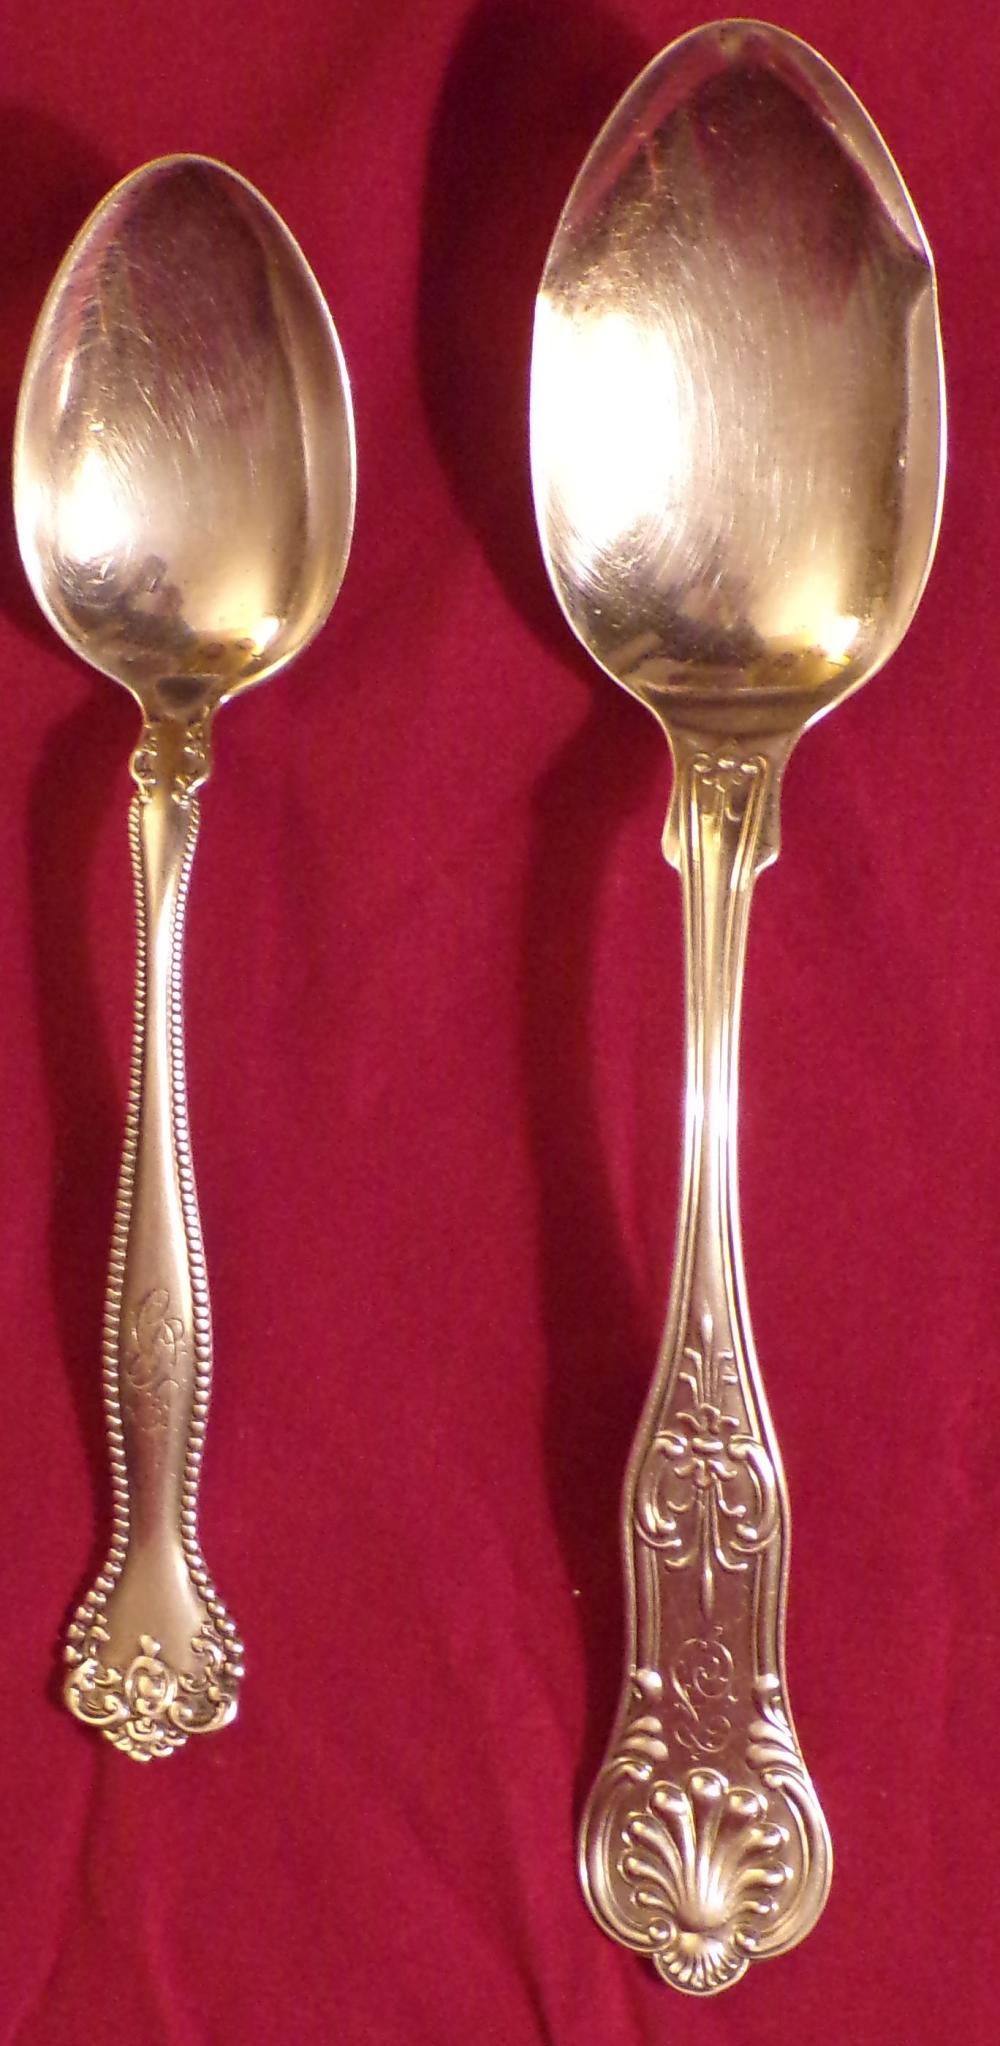 "Two (2) sterling silver flatware pieces including a serving spoon w/shell design, bowl dented, 8 ½"" L AND a  tablespoons w/beaded handle, 7"" L, both monogrammed, approx. 3.21 ozt"